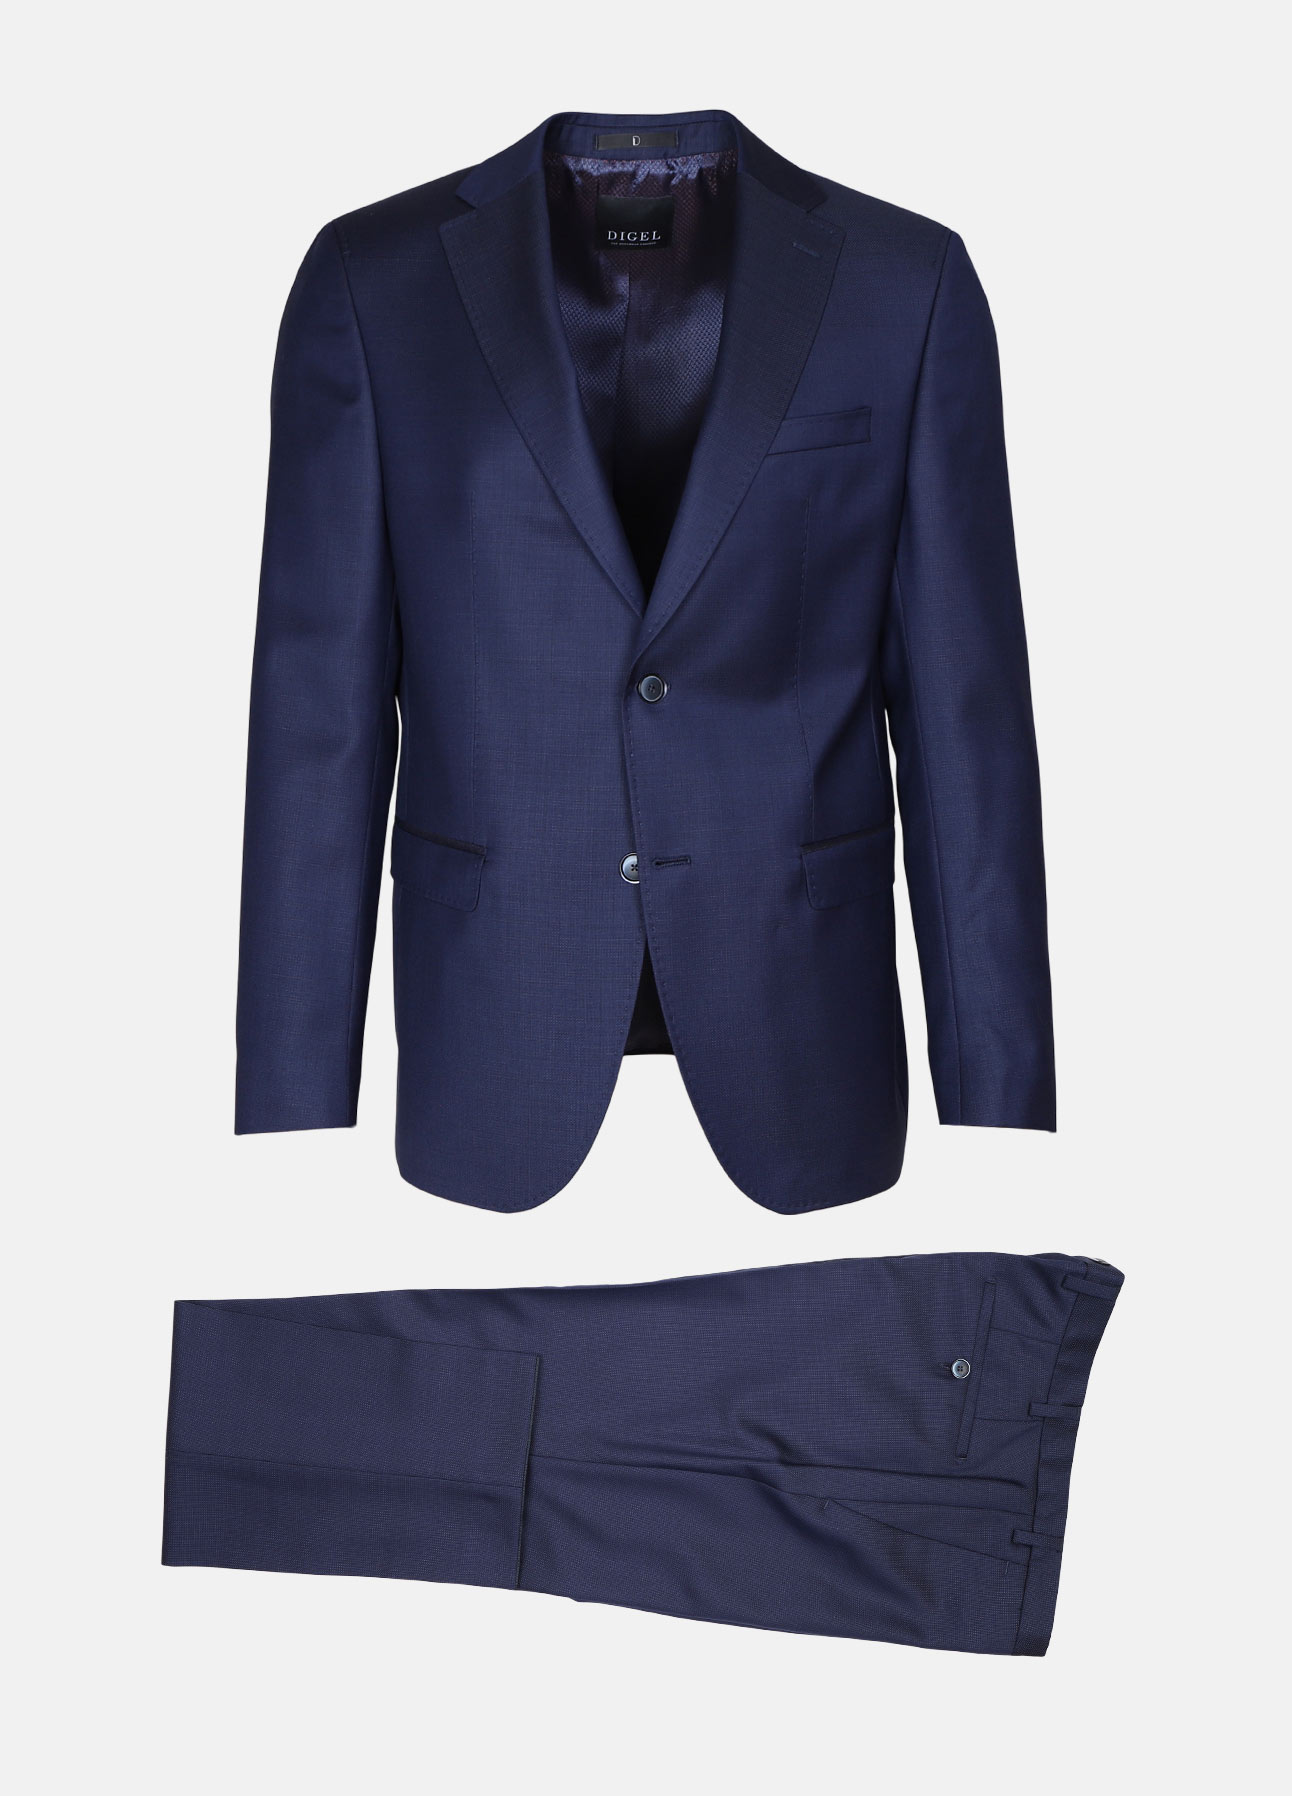 Klaas-kai habit Digel navy